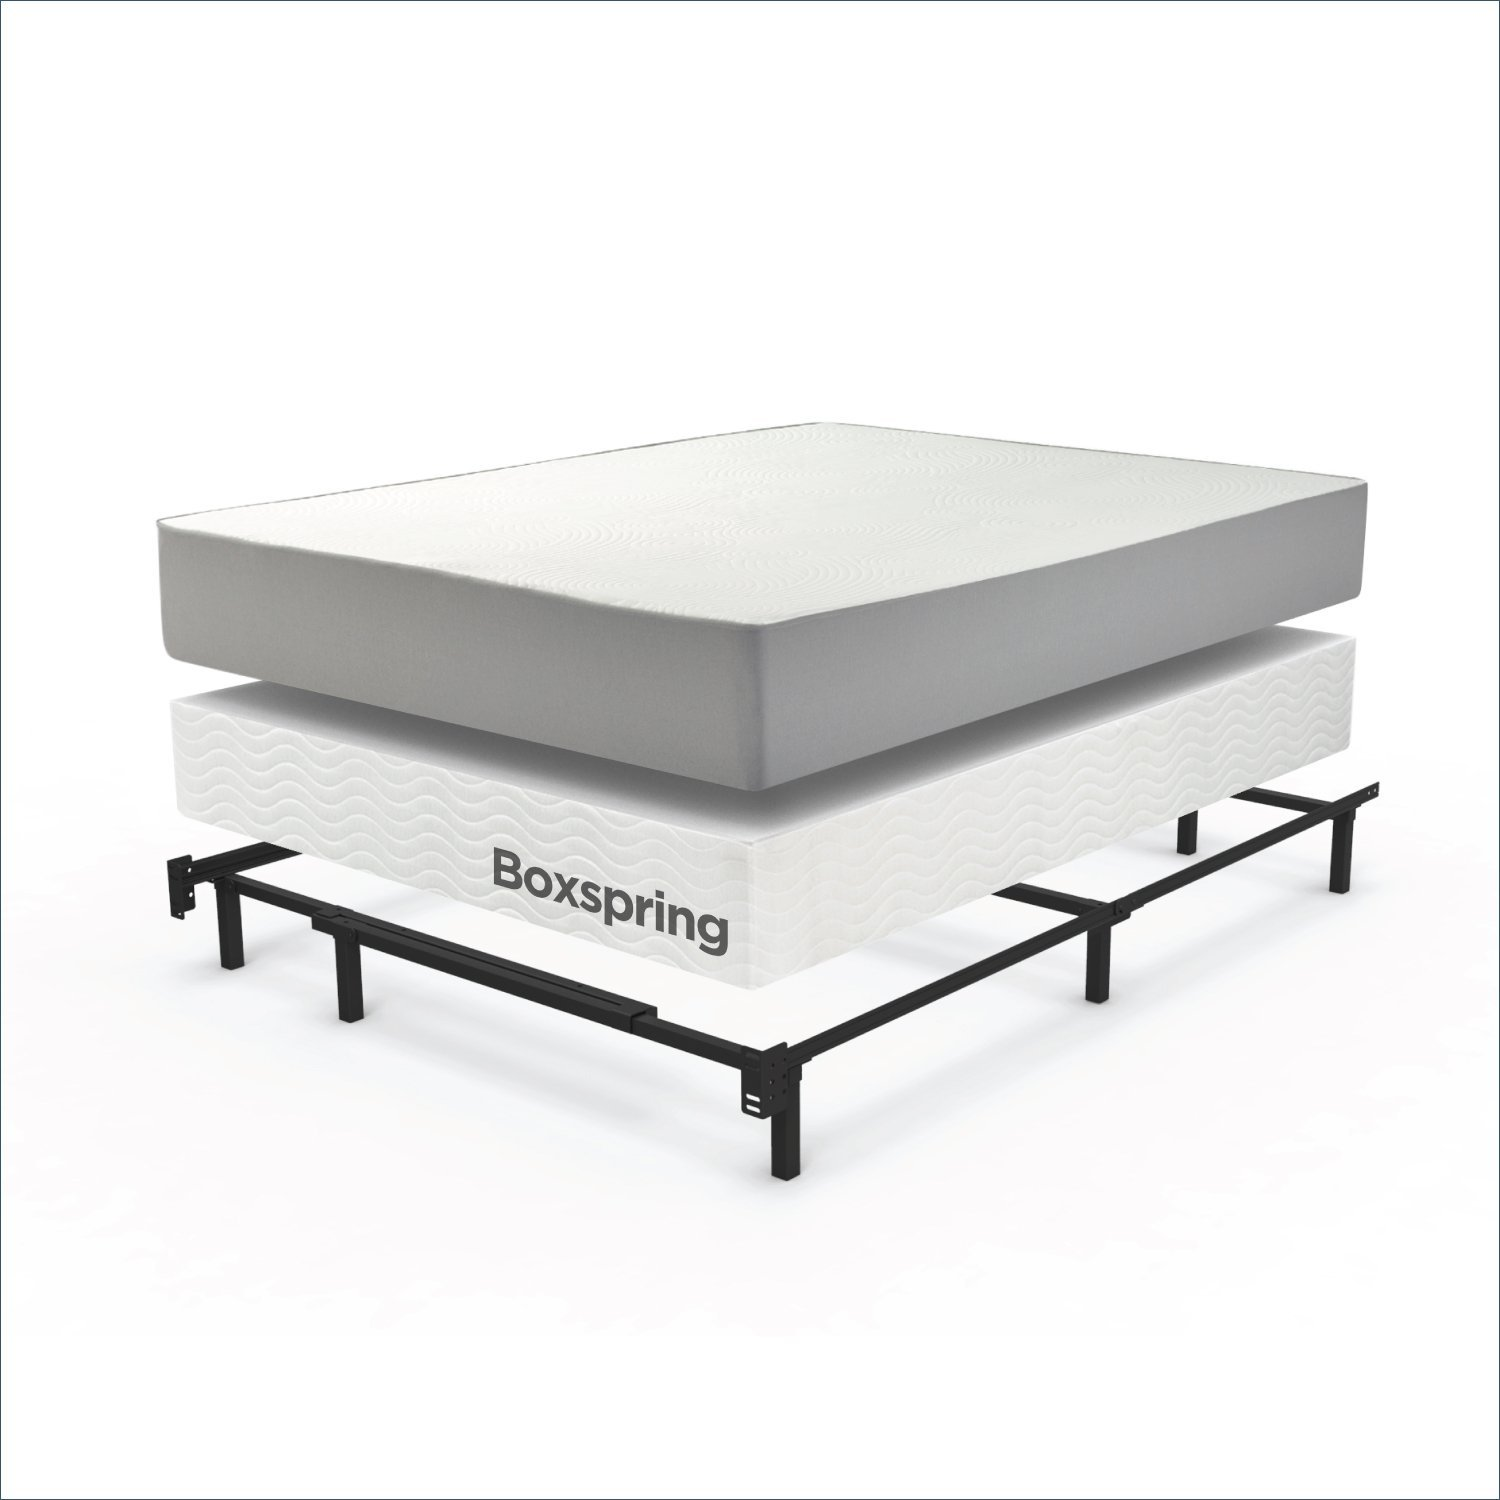 Top 10 Best Queen Bed Size Reviews — A Step by Step Buyer's Guide to Choosing the Perfect Bed of 2020